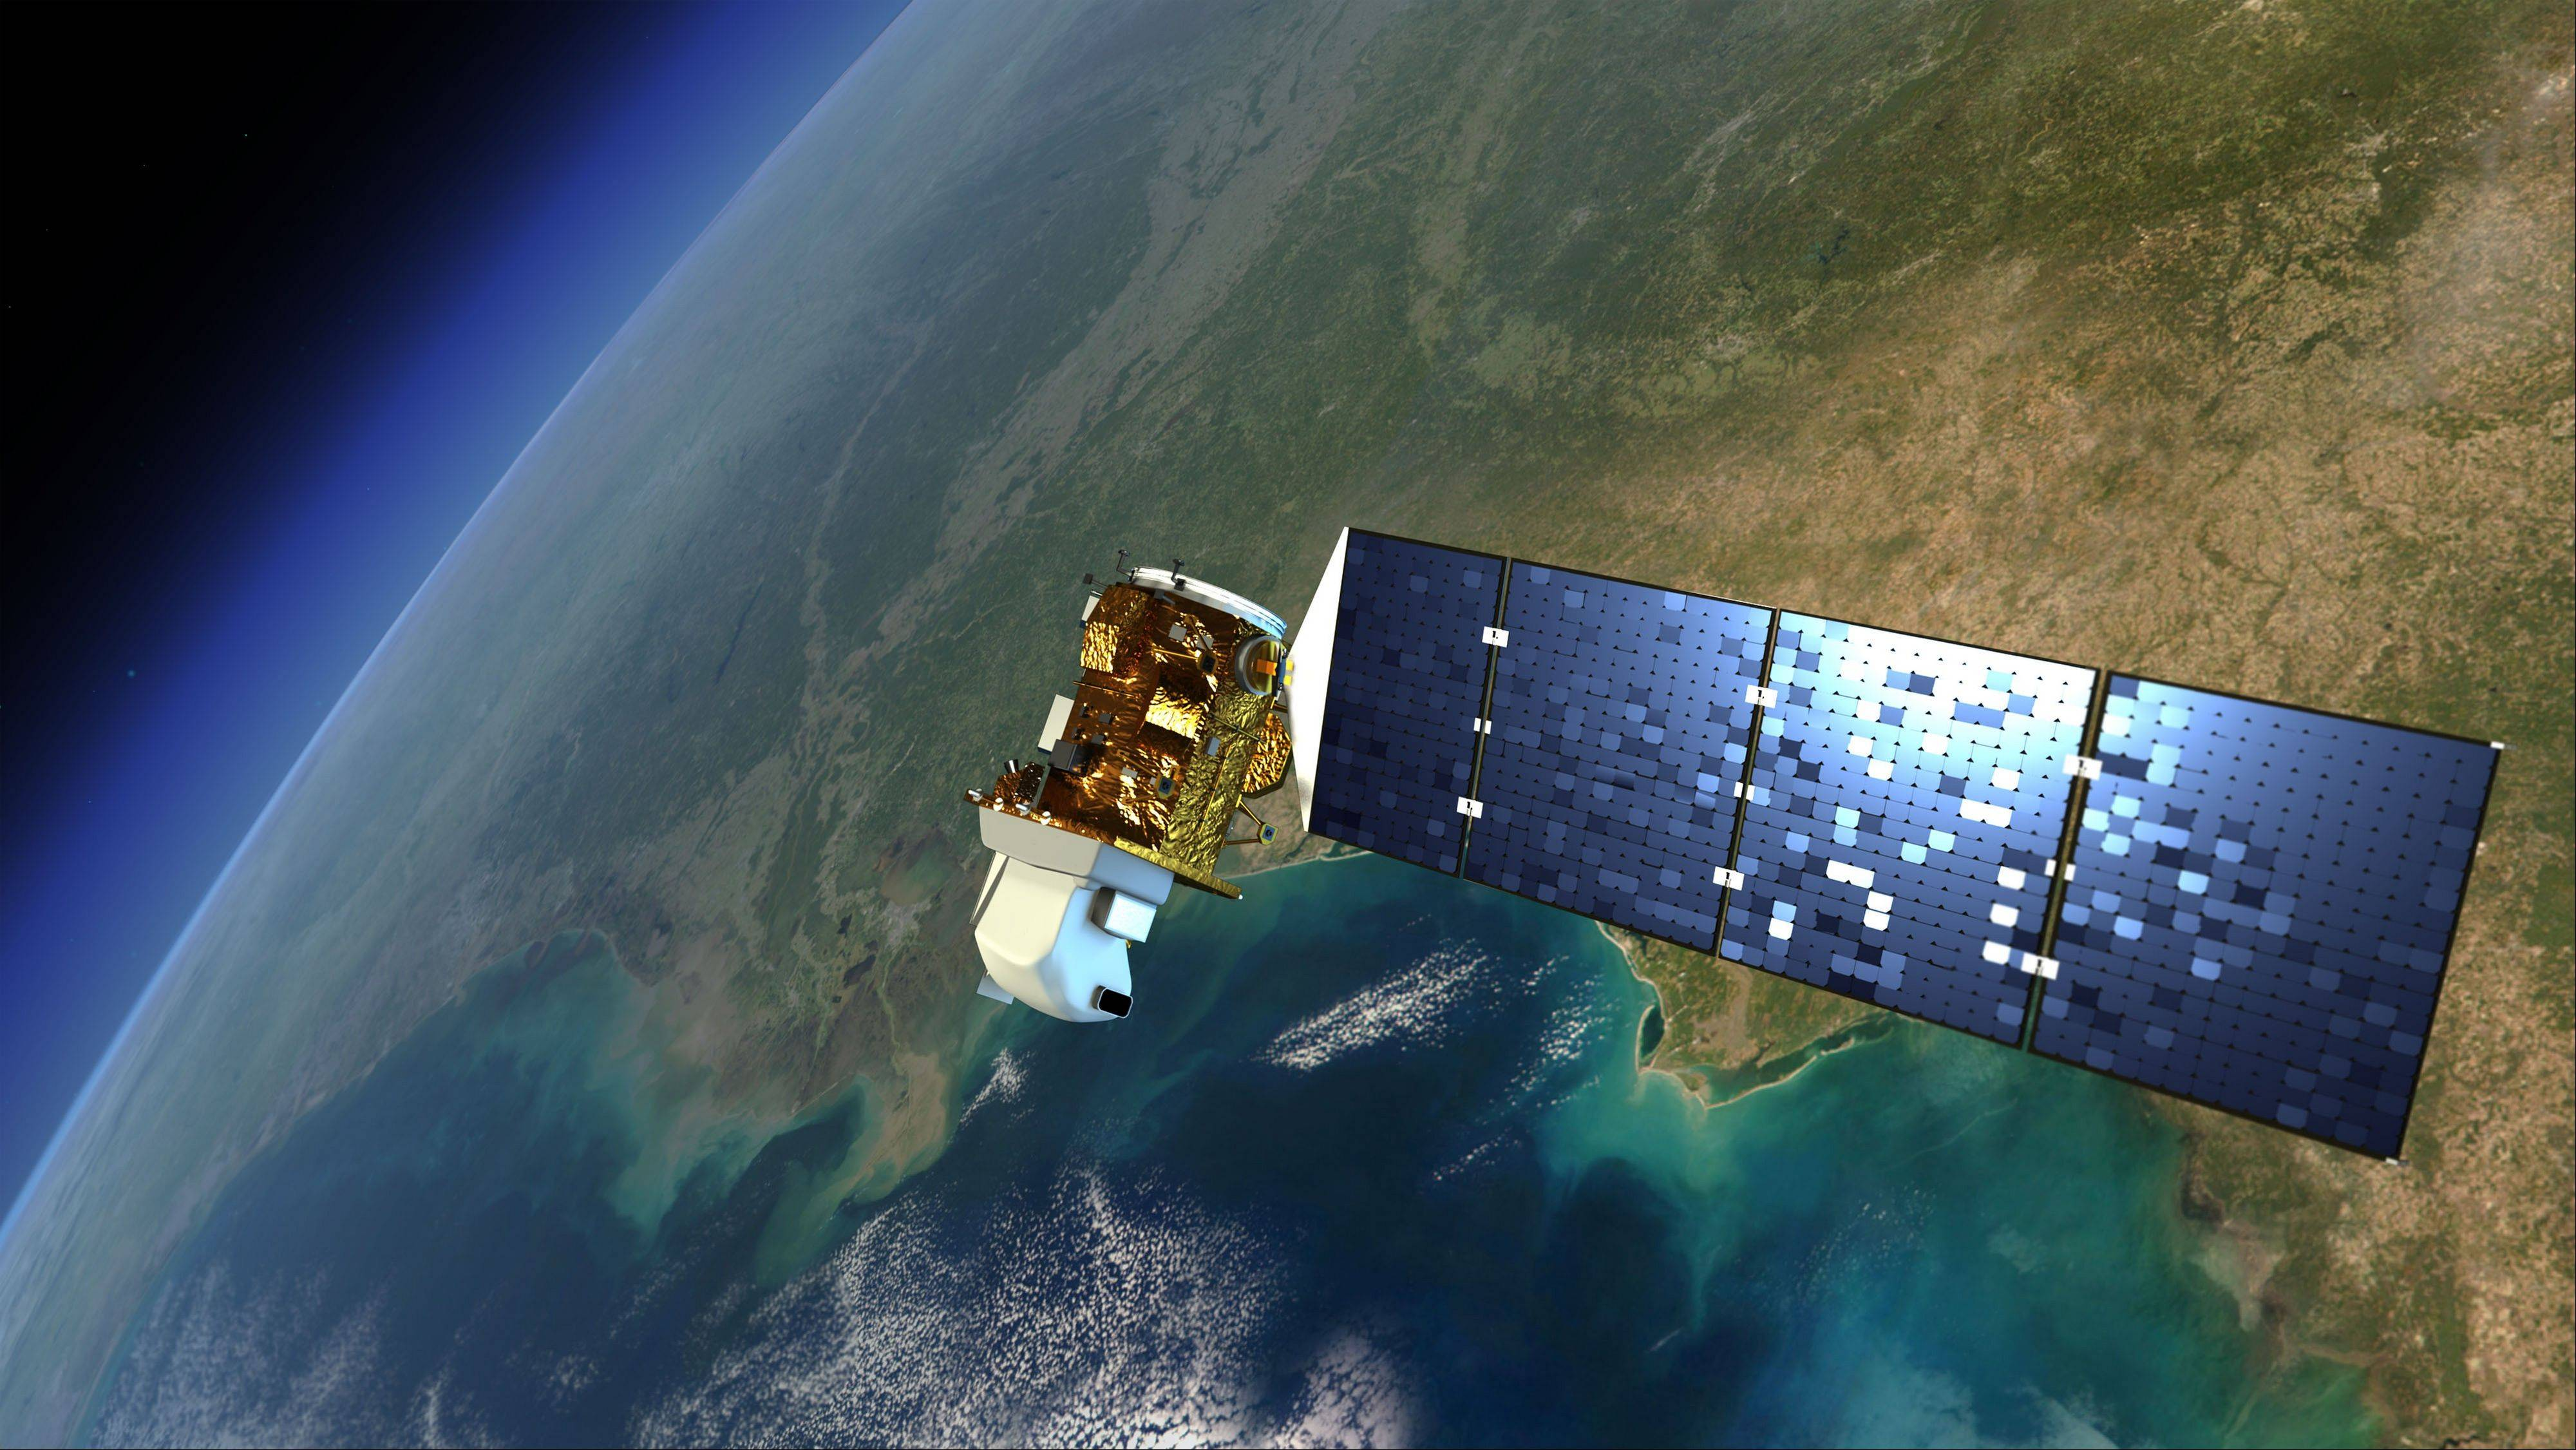 This sketch shows the Landsat satellite in orbit around Earth.